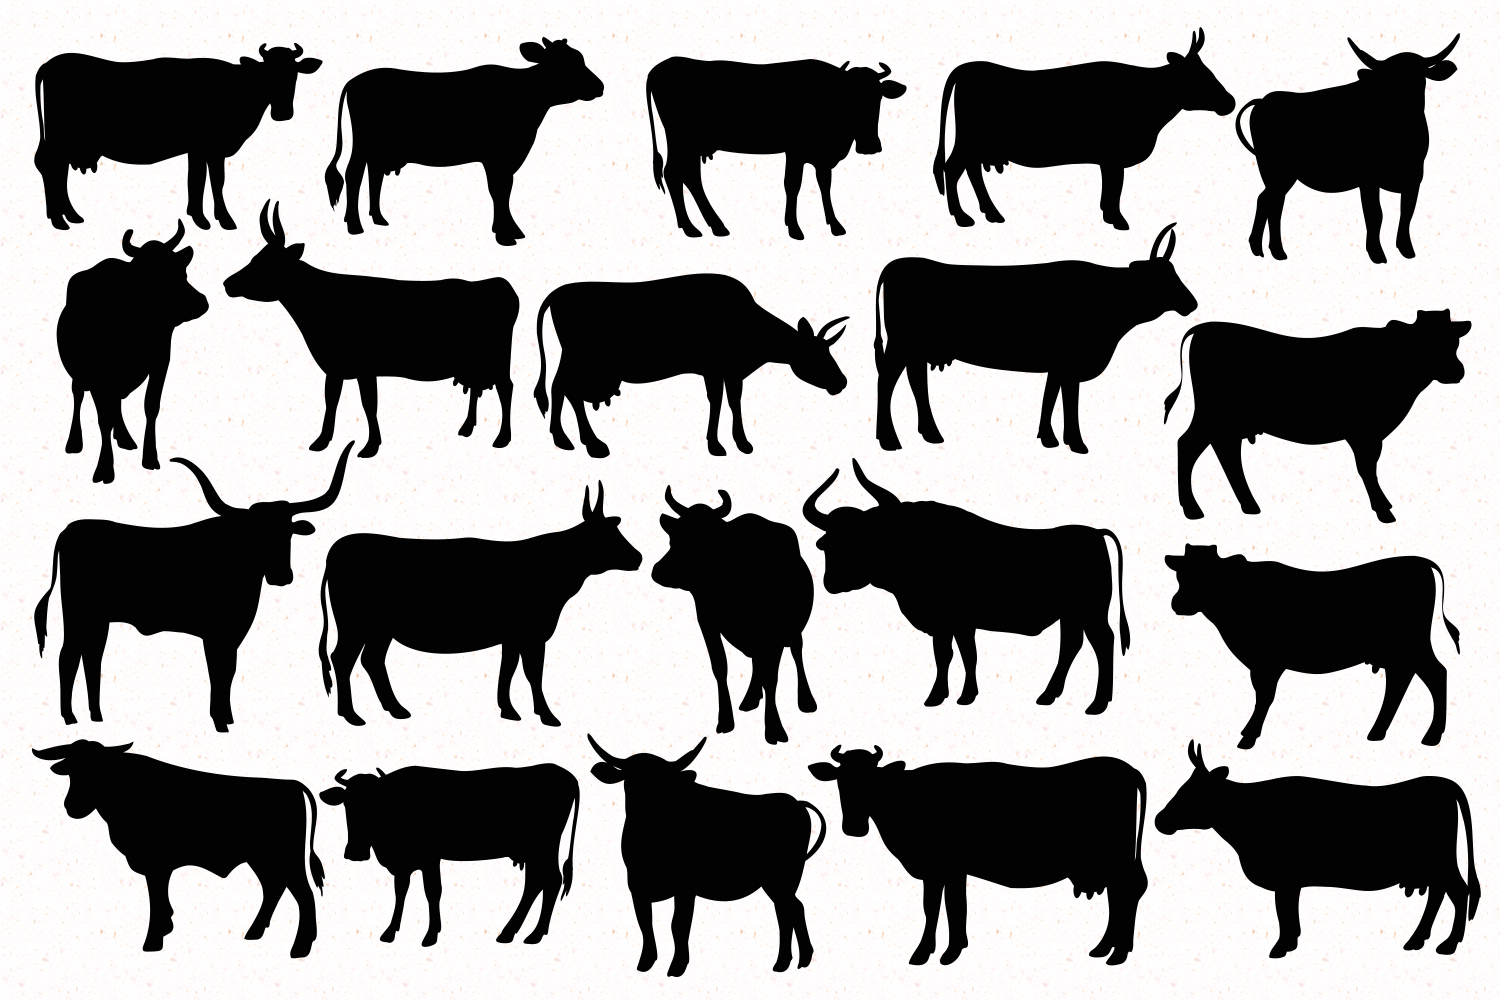 Silhouettes of cattle example image 2